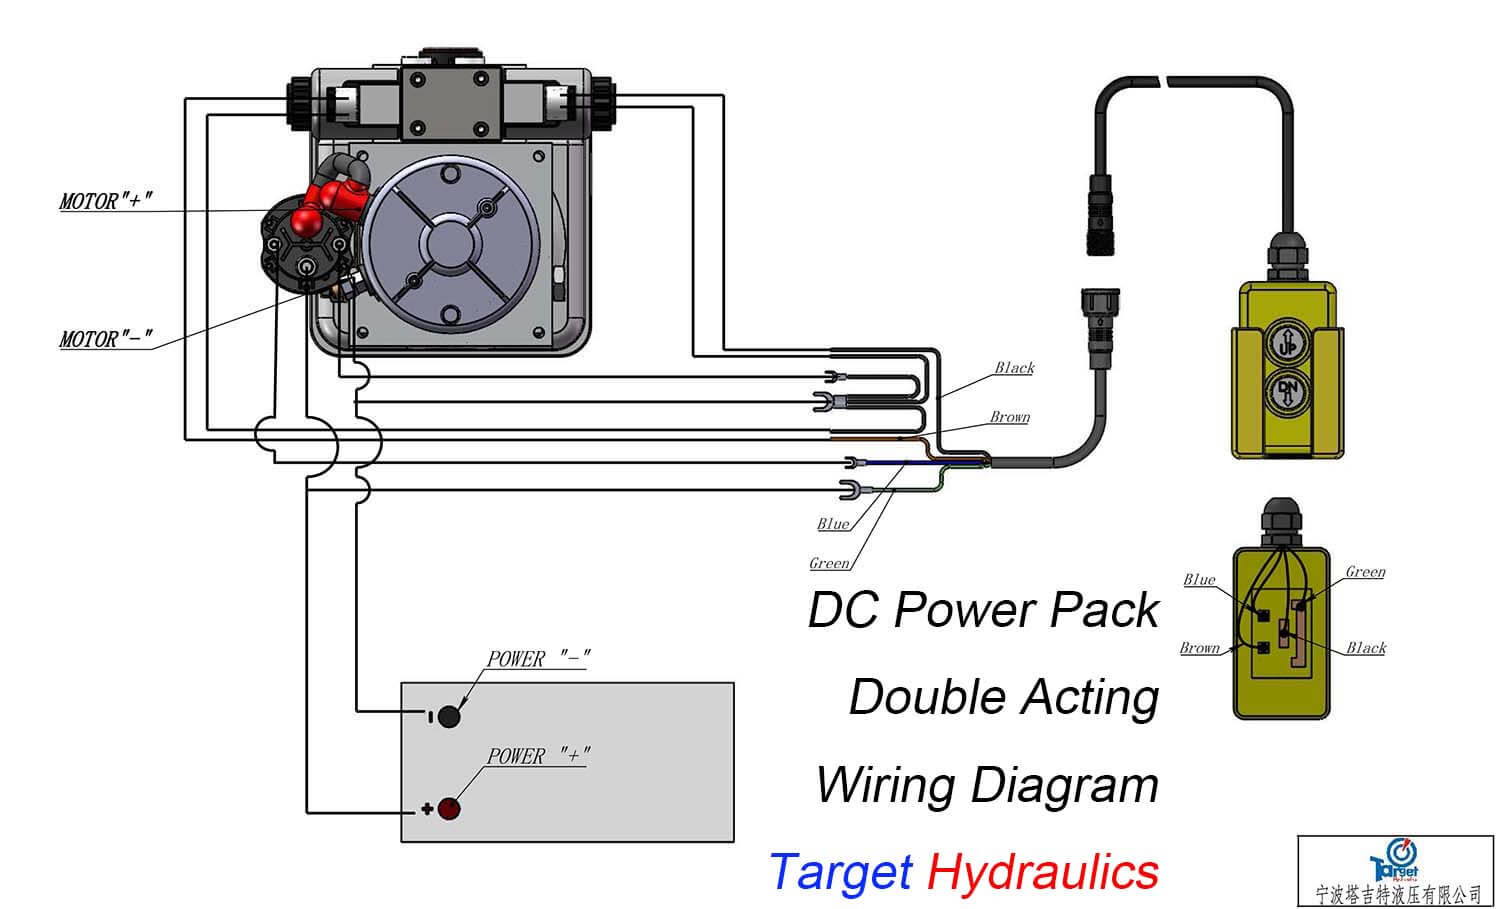 How To Wire Hydraulic Power Packpower Unit Diagram Design Wiring For Motor Dc Double Acting Pack